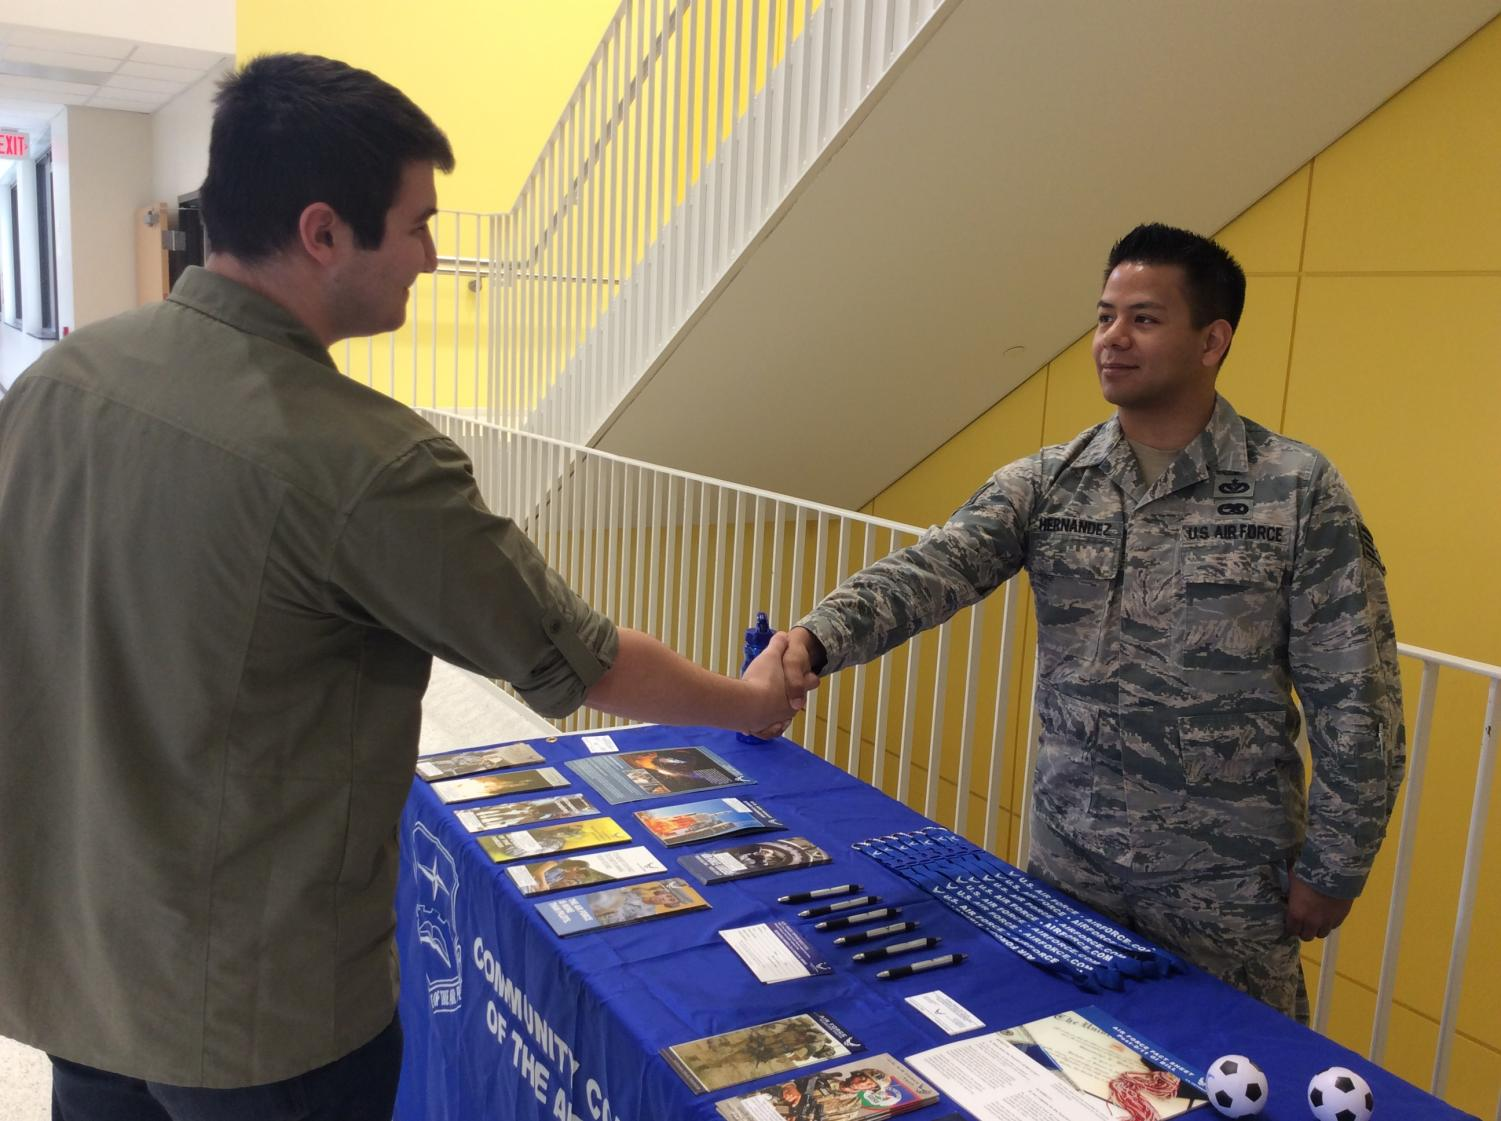 Justin Defenbaugh shaking hands with Air Force recruiter Staff Sergeant Hernandez